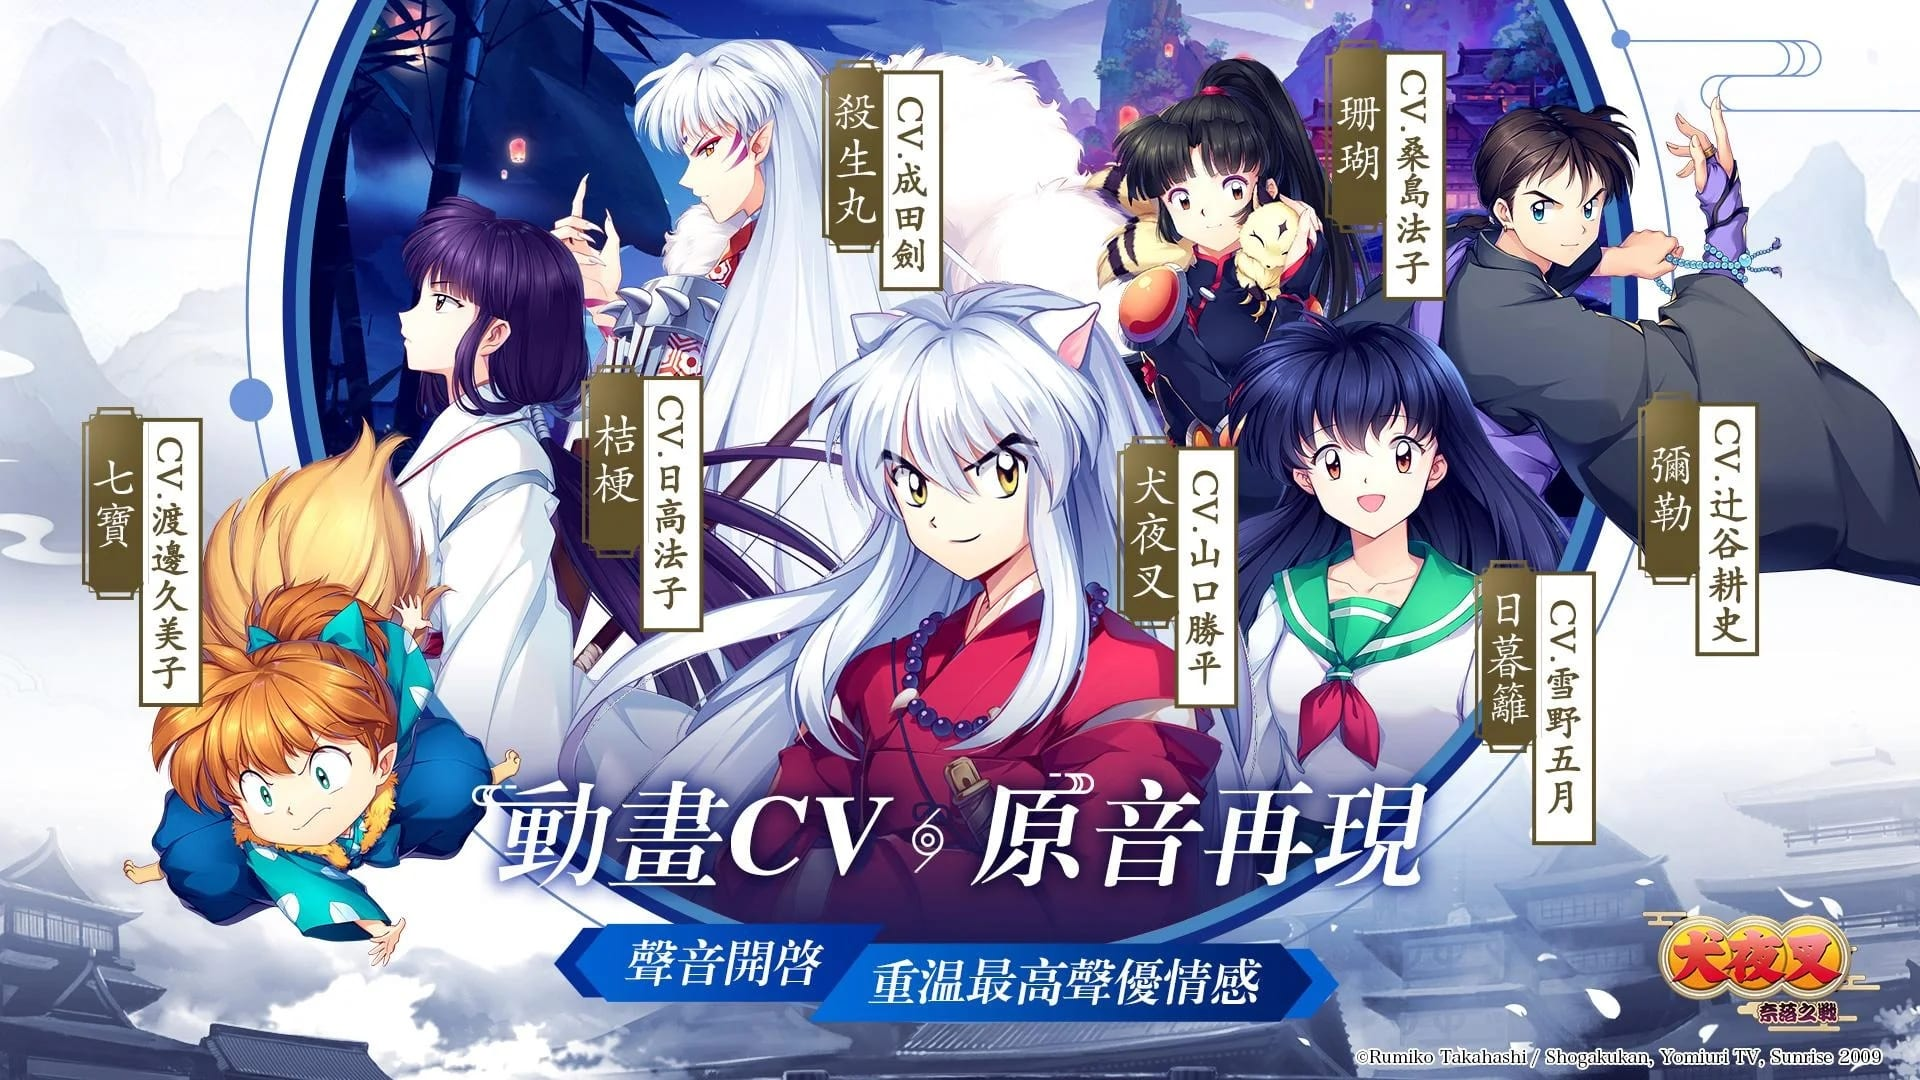 Inuyasha: War of Naraku – Quick look at starting gameplay of